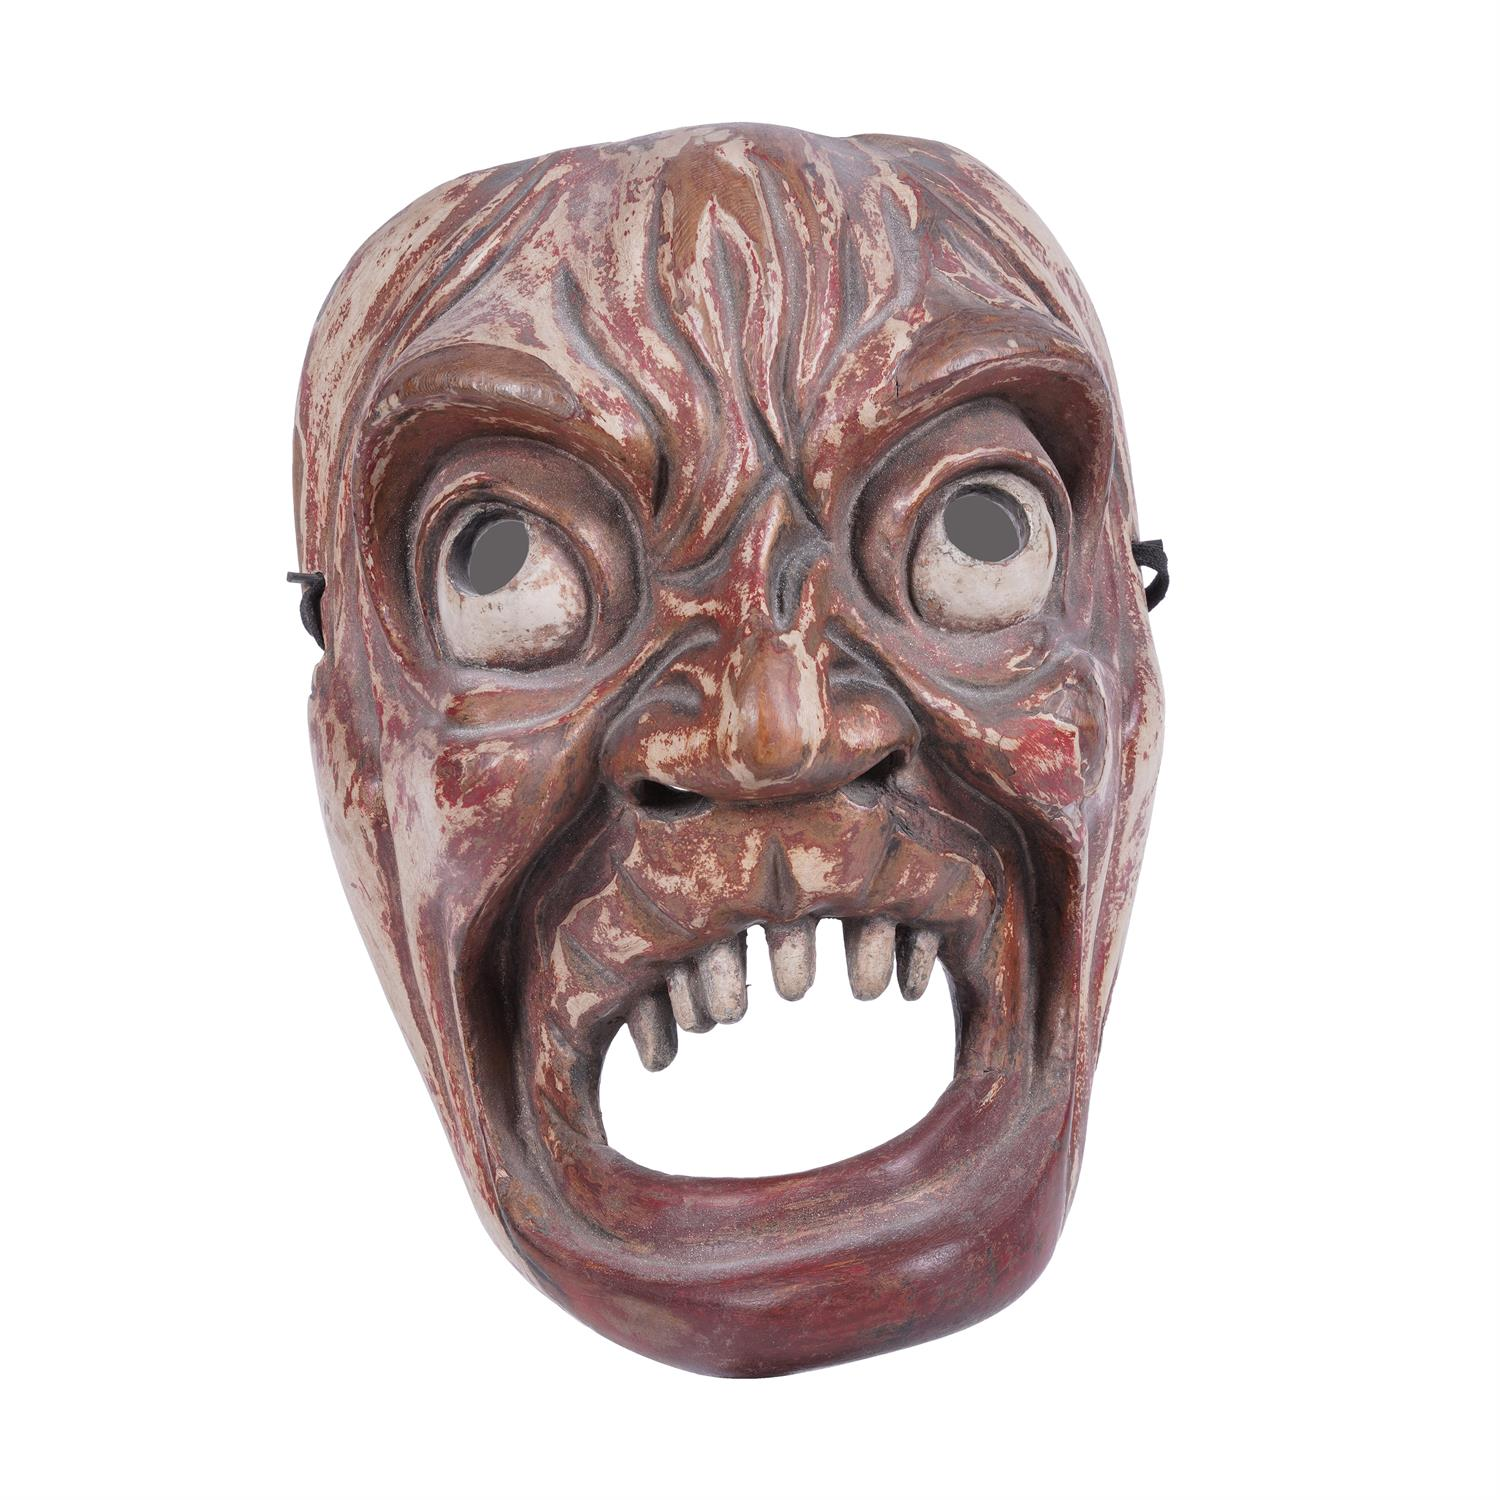 .A LACQUERED 'TOOTHLESS' WOODEN MASK Japan, 19th century H: 22 cm - w: 16 cm Provenance: A curated - Image 3 of 4